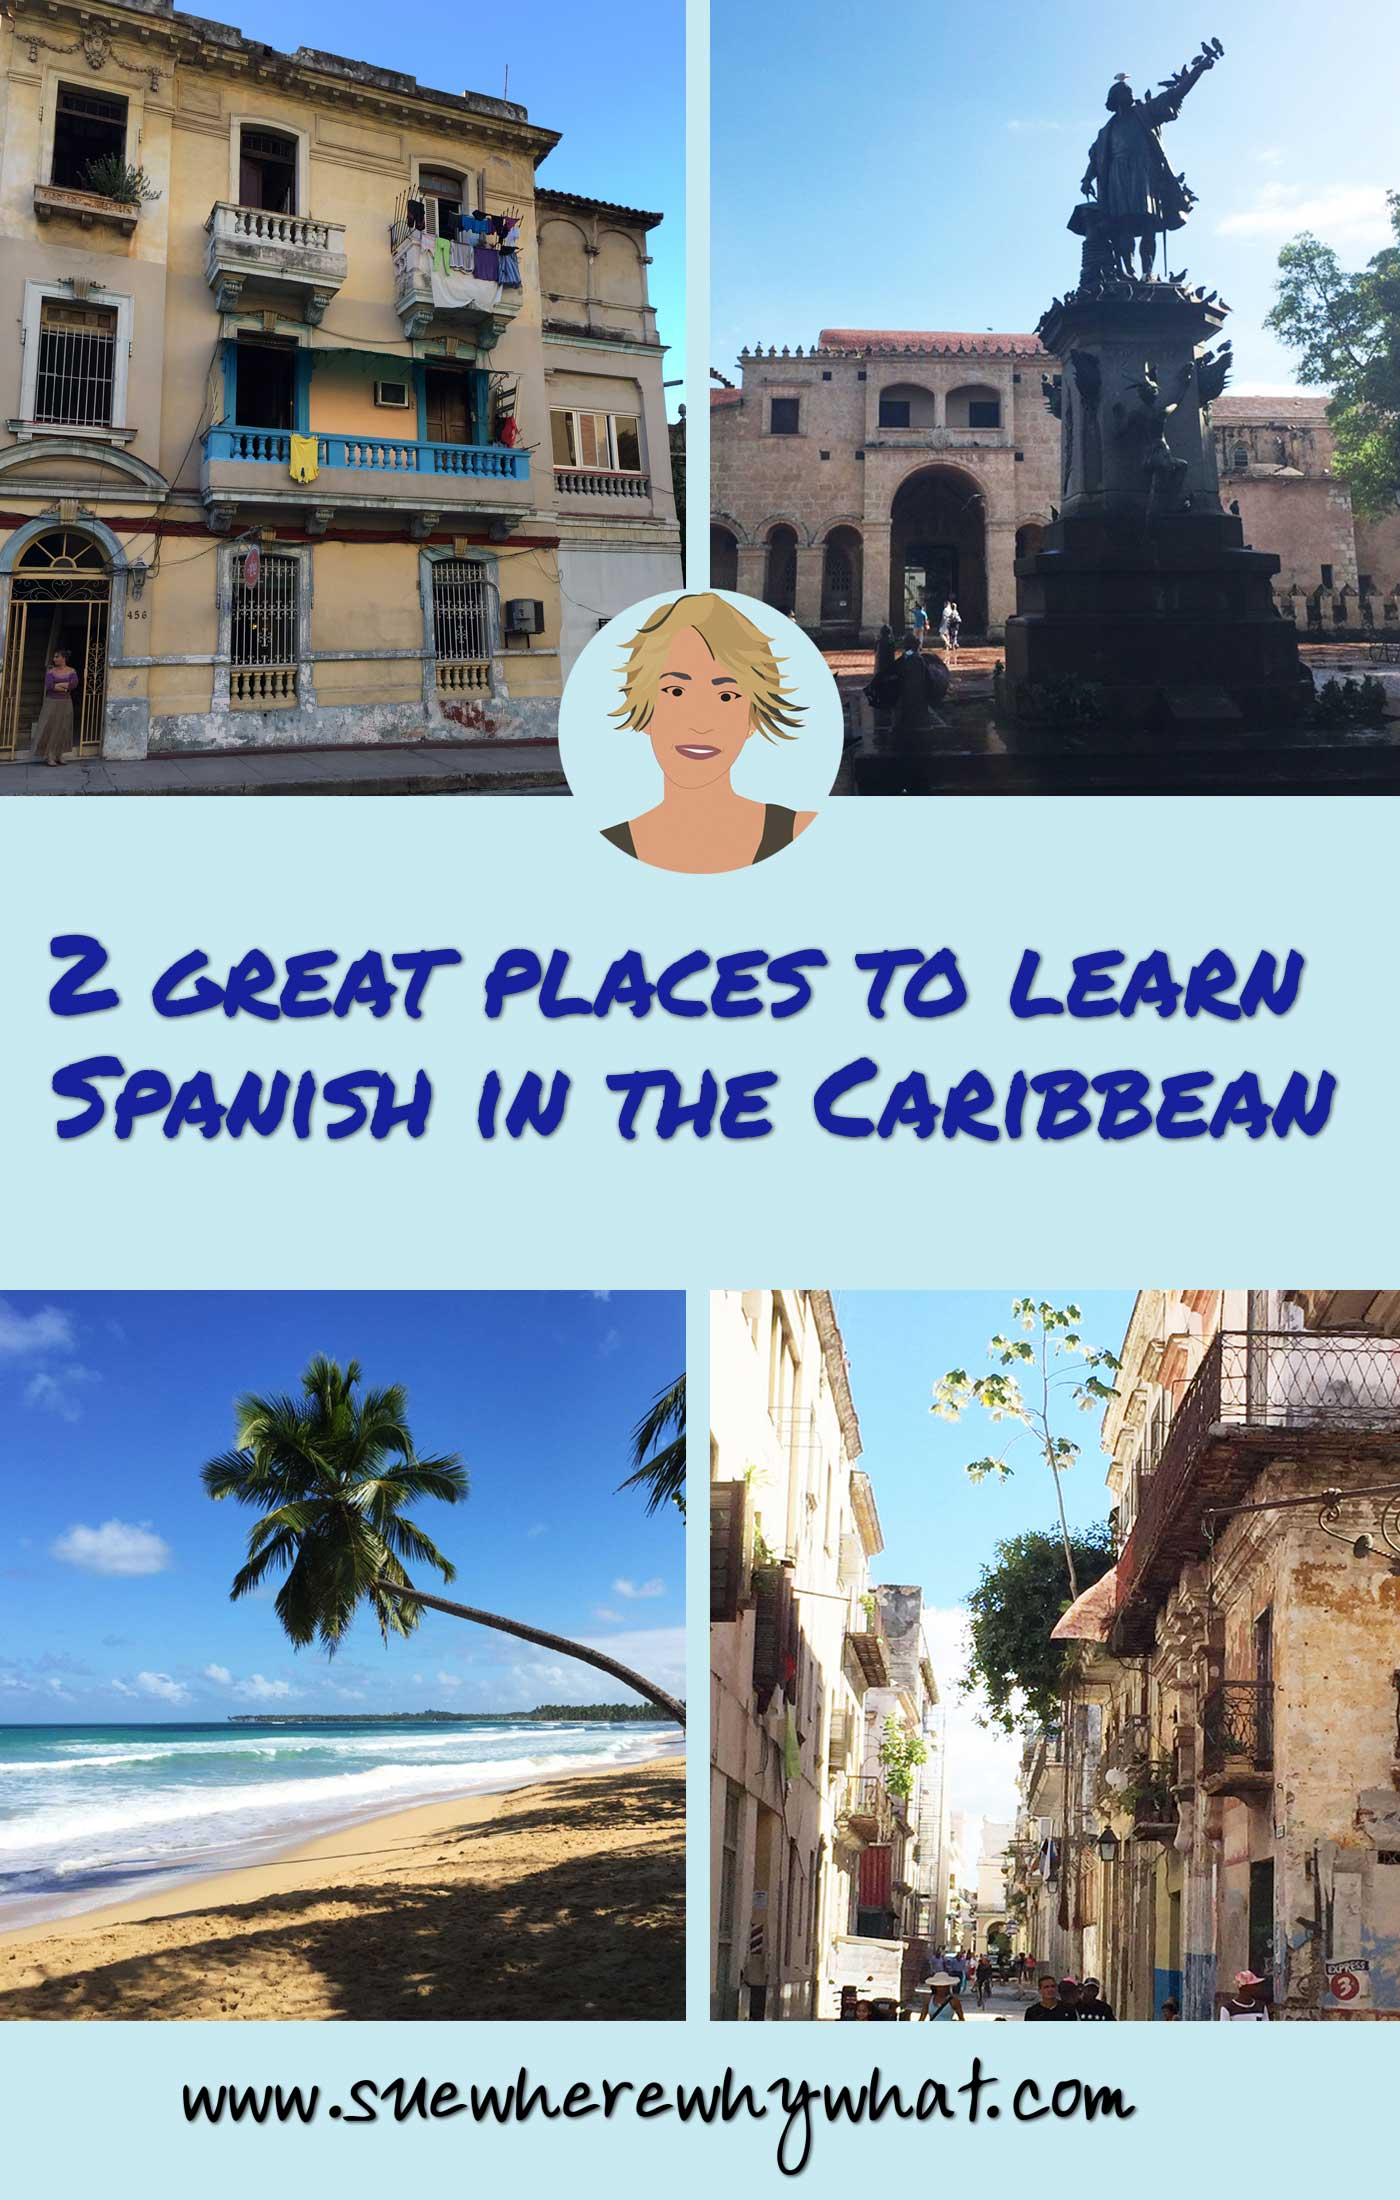 2 great places to learn Spanish in the Caribbean